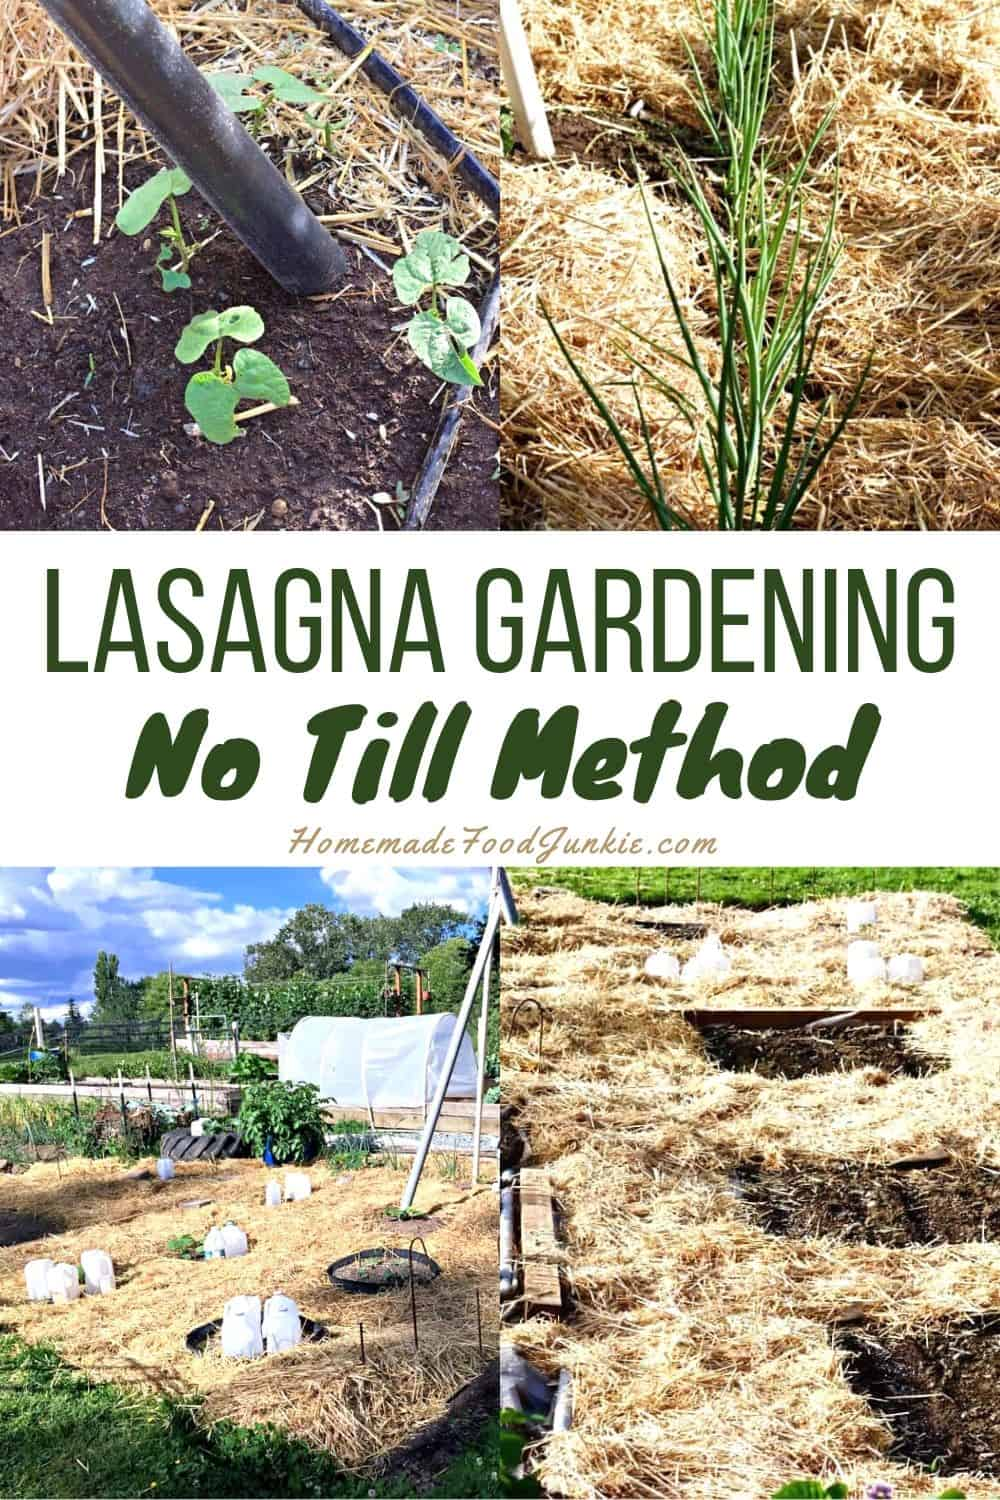 Lasagna gardening no till method-pin image